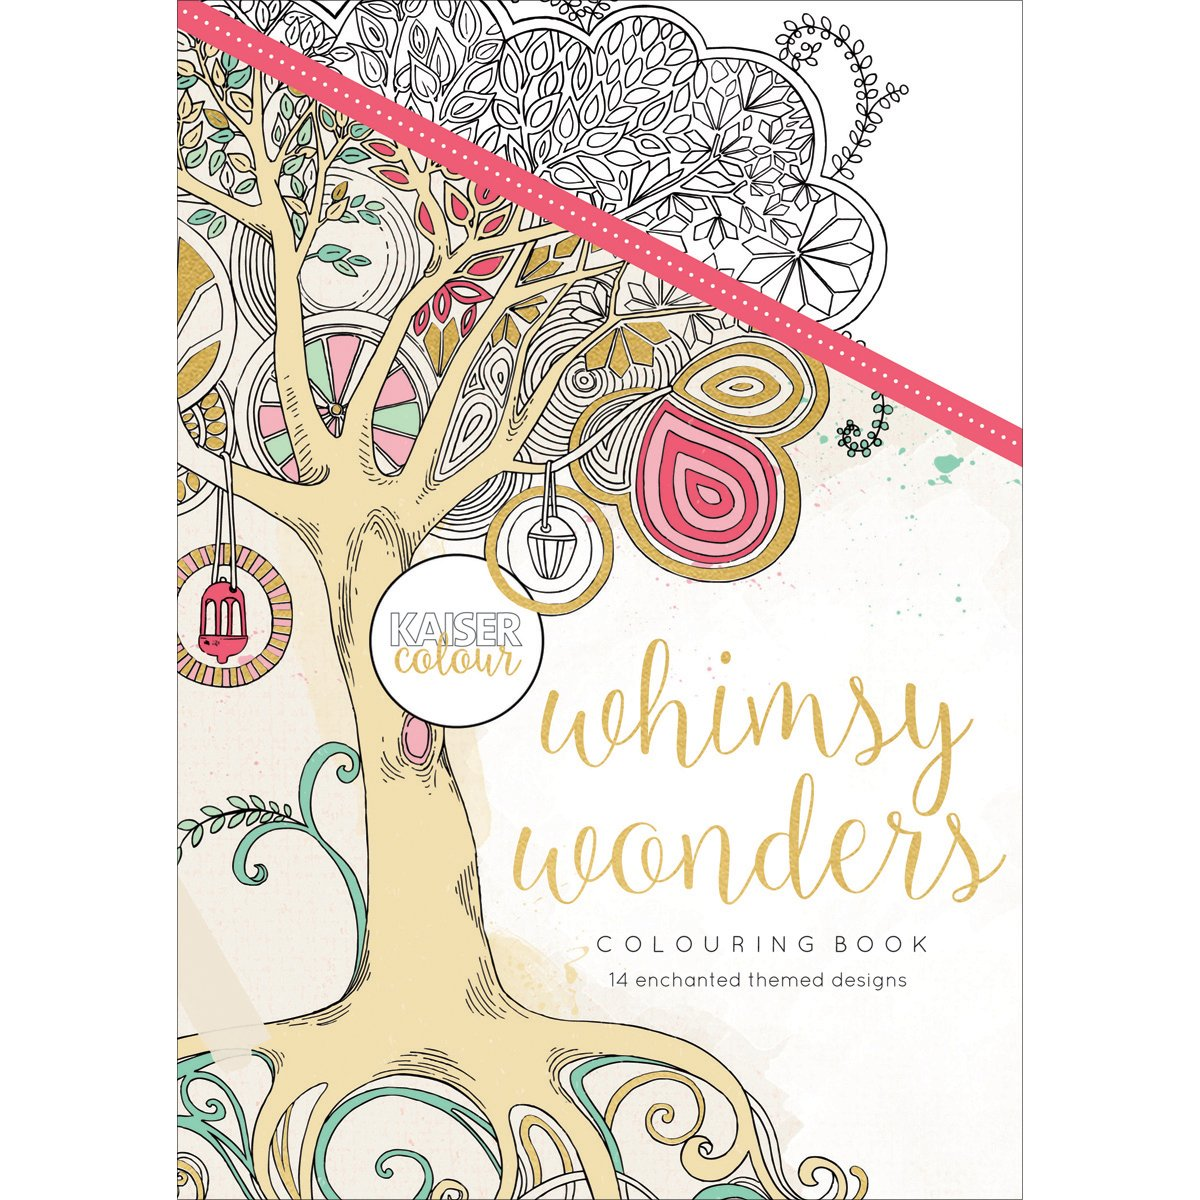 Kaisercolour Coloring Book-Whimsy Wonders